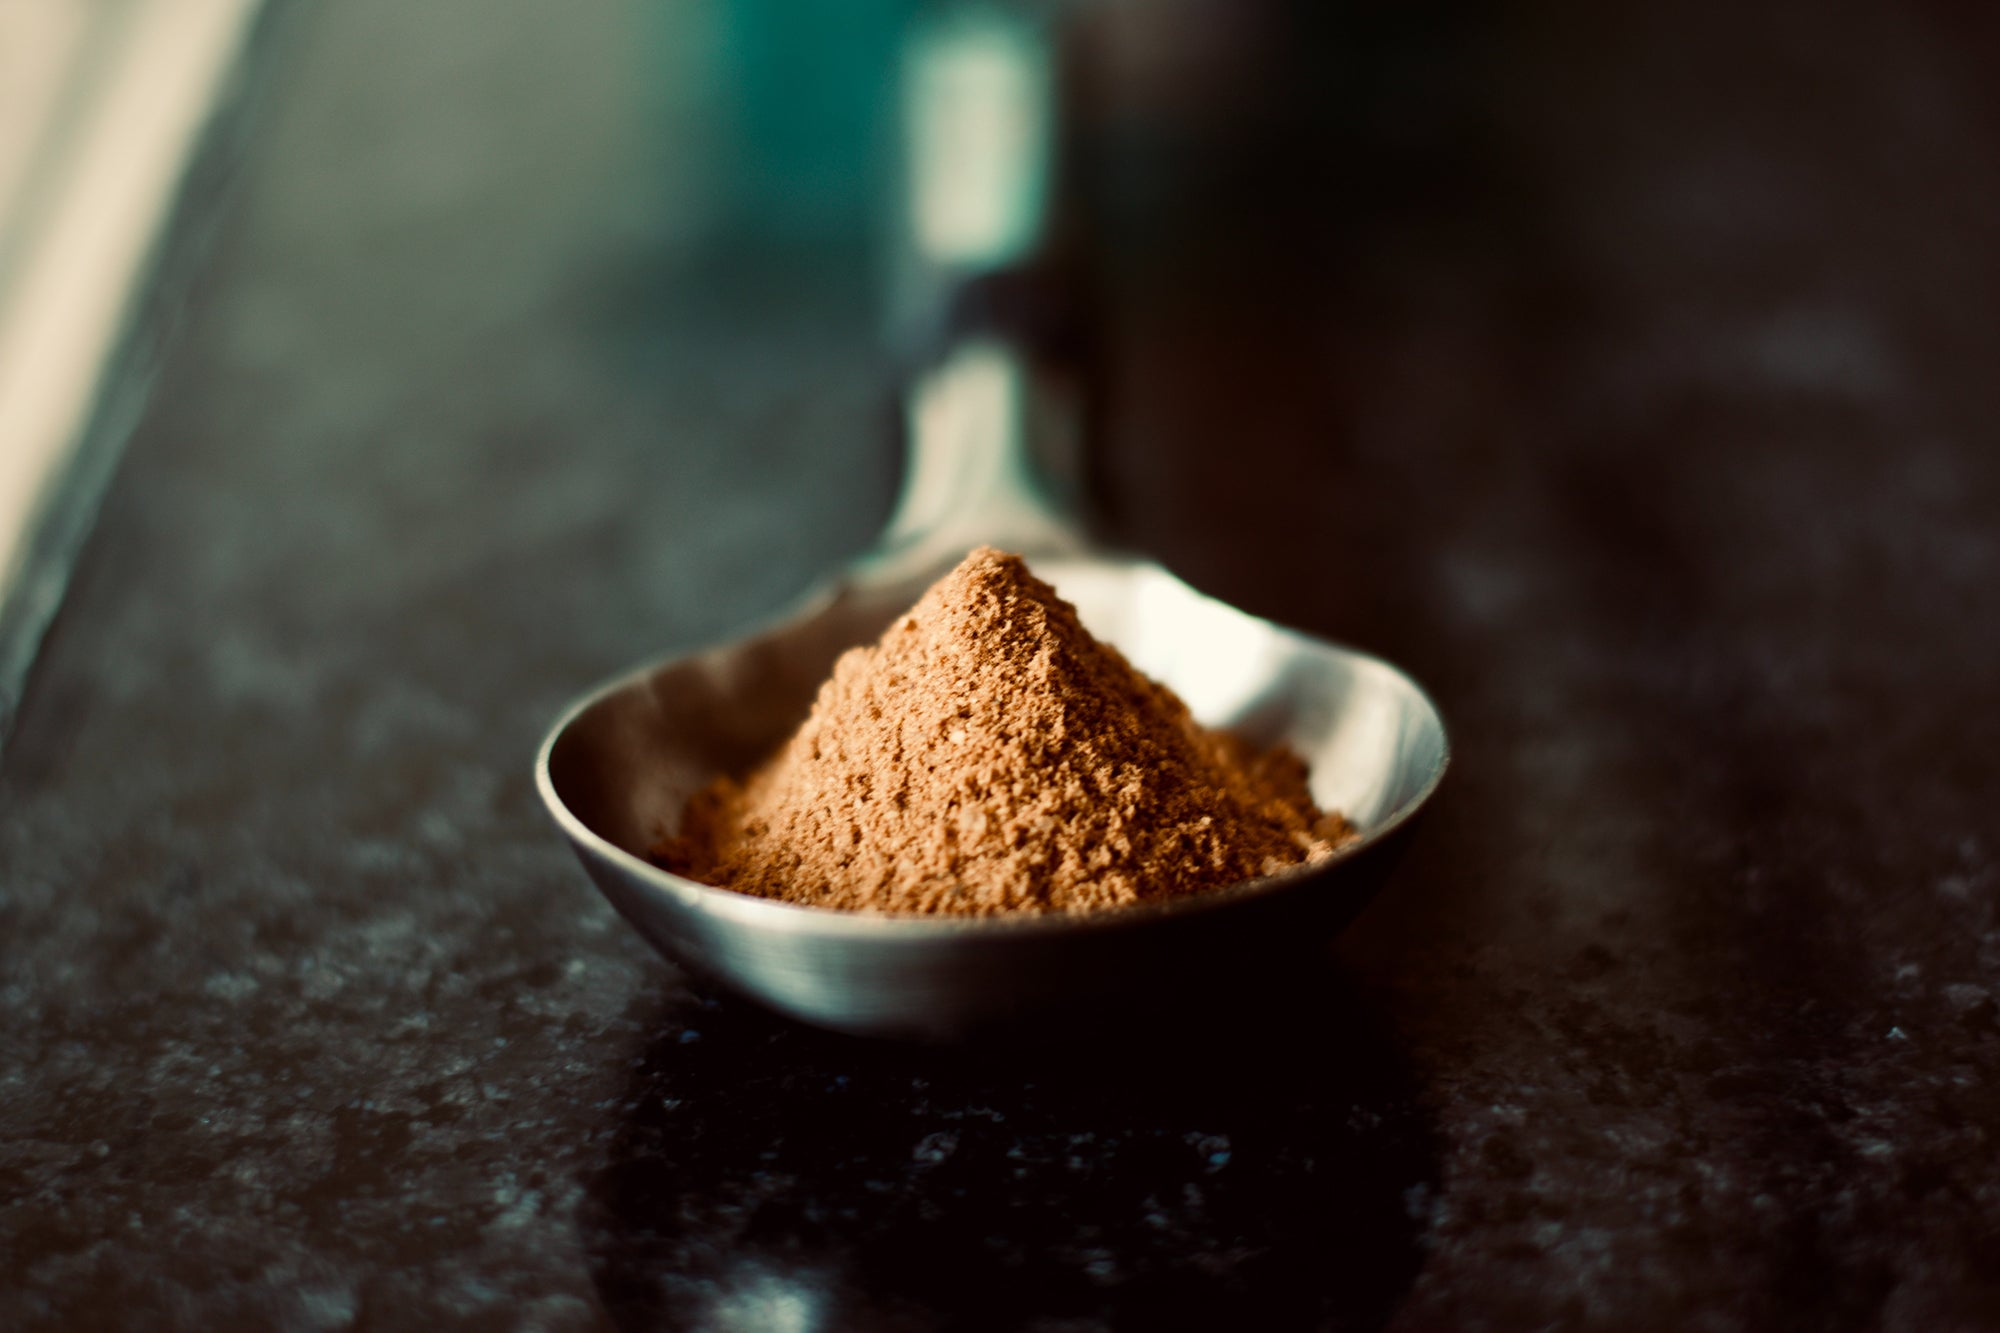 brown protein powder in a silver spoon